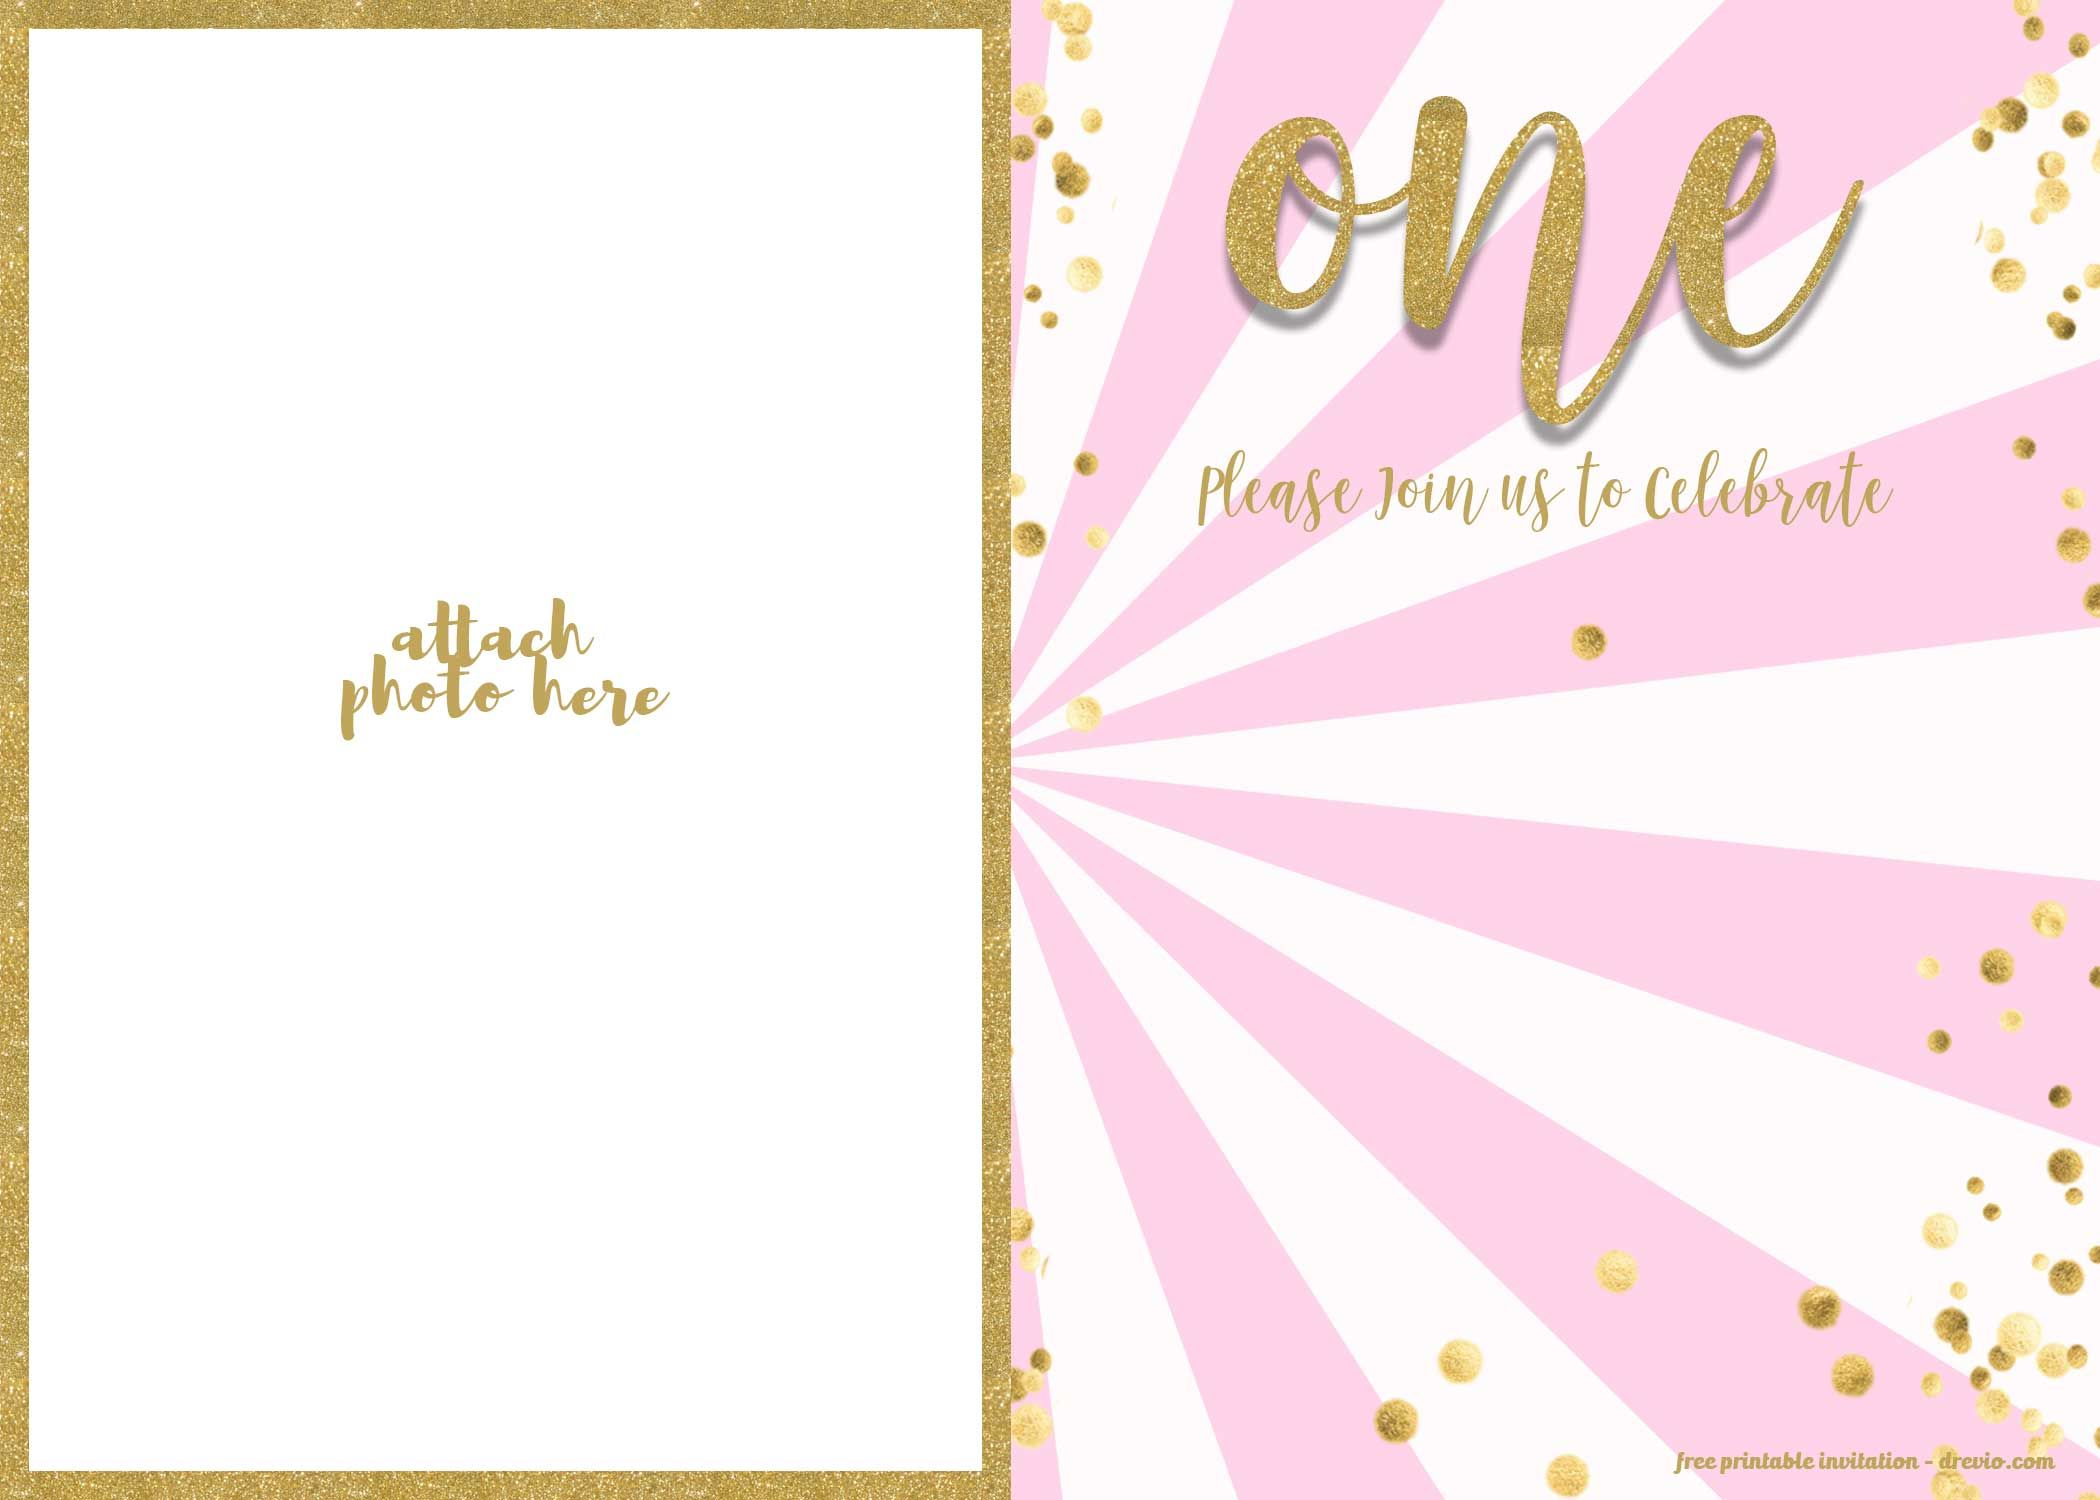 Free FREE 1st Birthday Invitation Pink And Gold Glitter Template